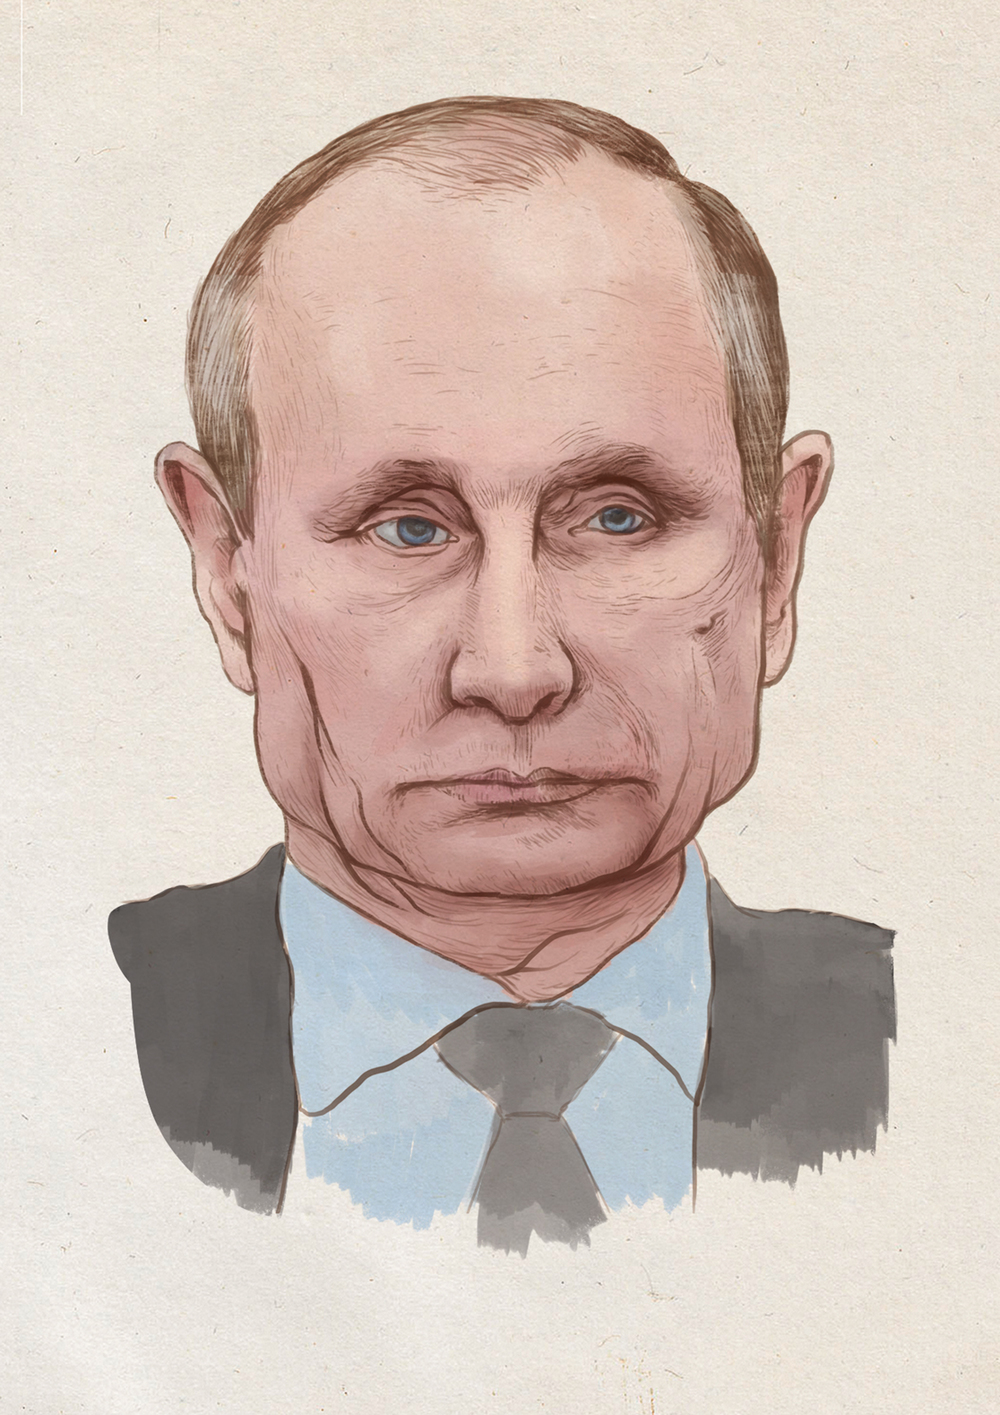 Colour sketch and study for Putin illustration, arguably a finished piece in itself.